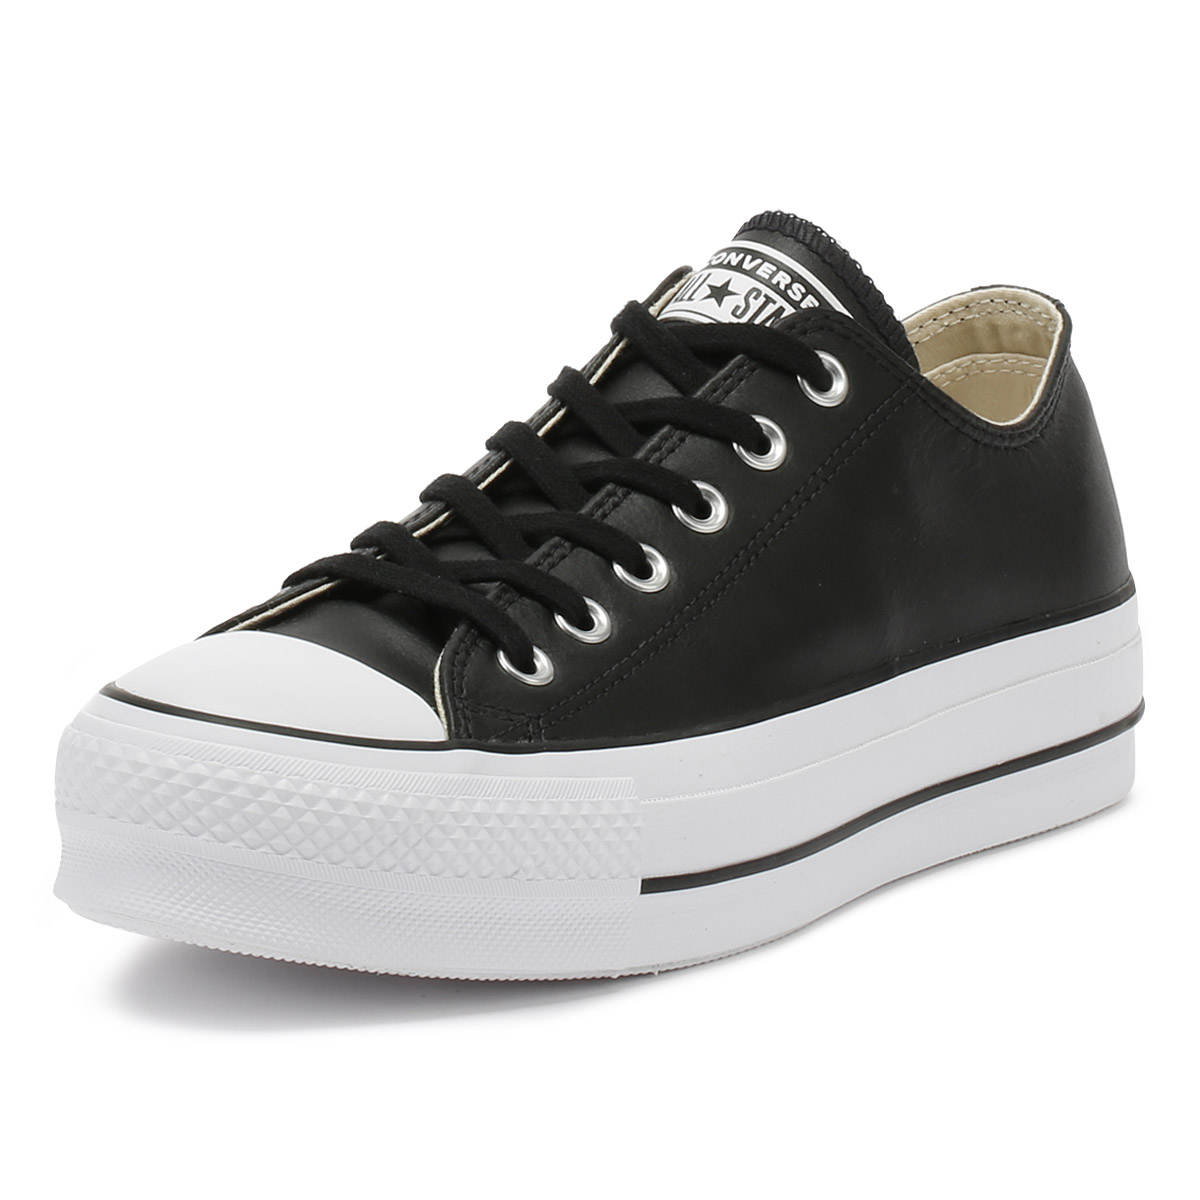 Details about Converse Chuck Taylor All Star Womens Ox Trainers Black Lift Clean Casual Shoes